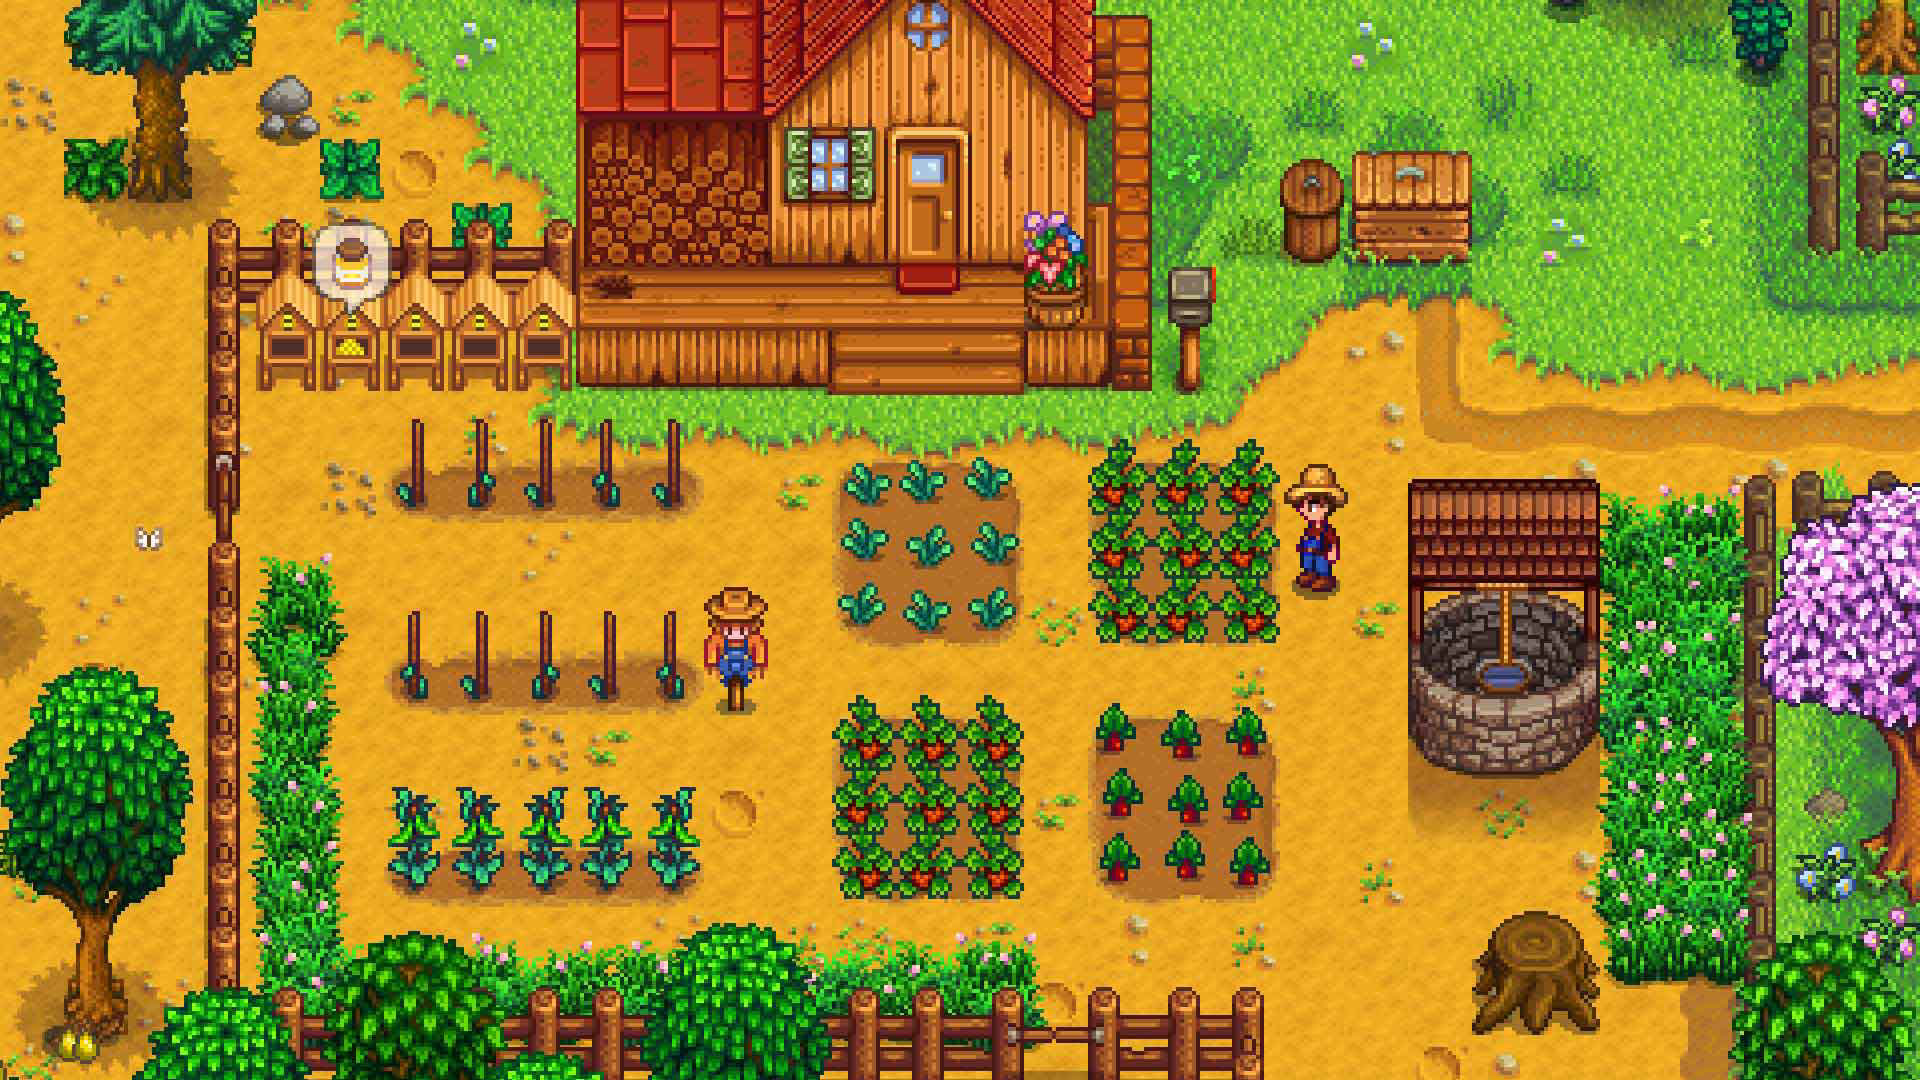 stardew-valley-screen-02-ps4-us-13dec16?